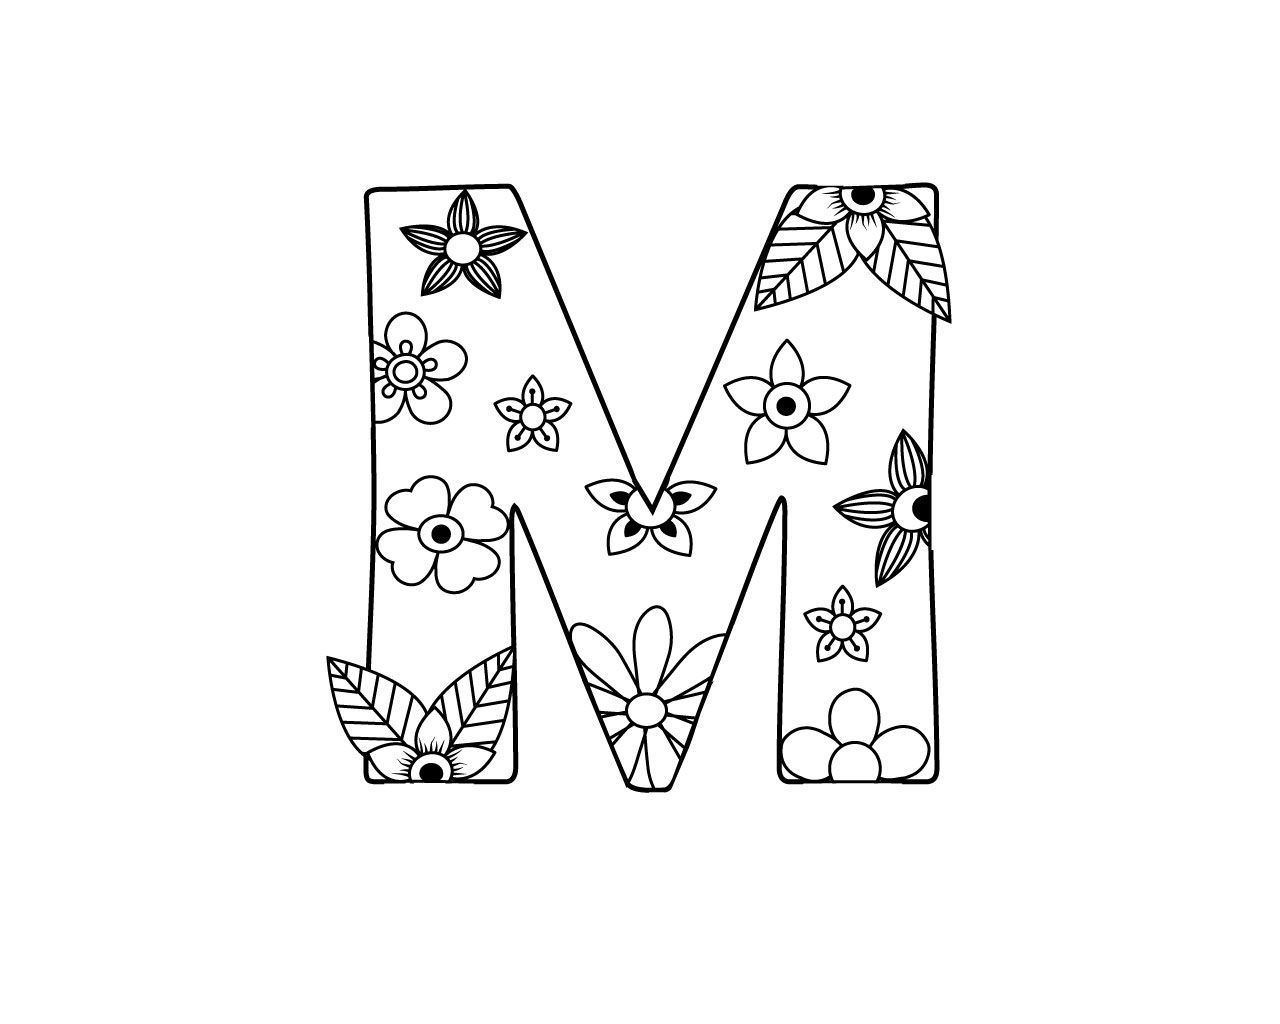 Free Printable Letter M Coloring Pages You Get Letter M Coloring Pages For Free Download Also See Letter N Coloring Pages Free Coloring Pages Free Coloring